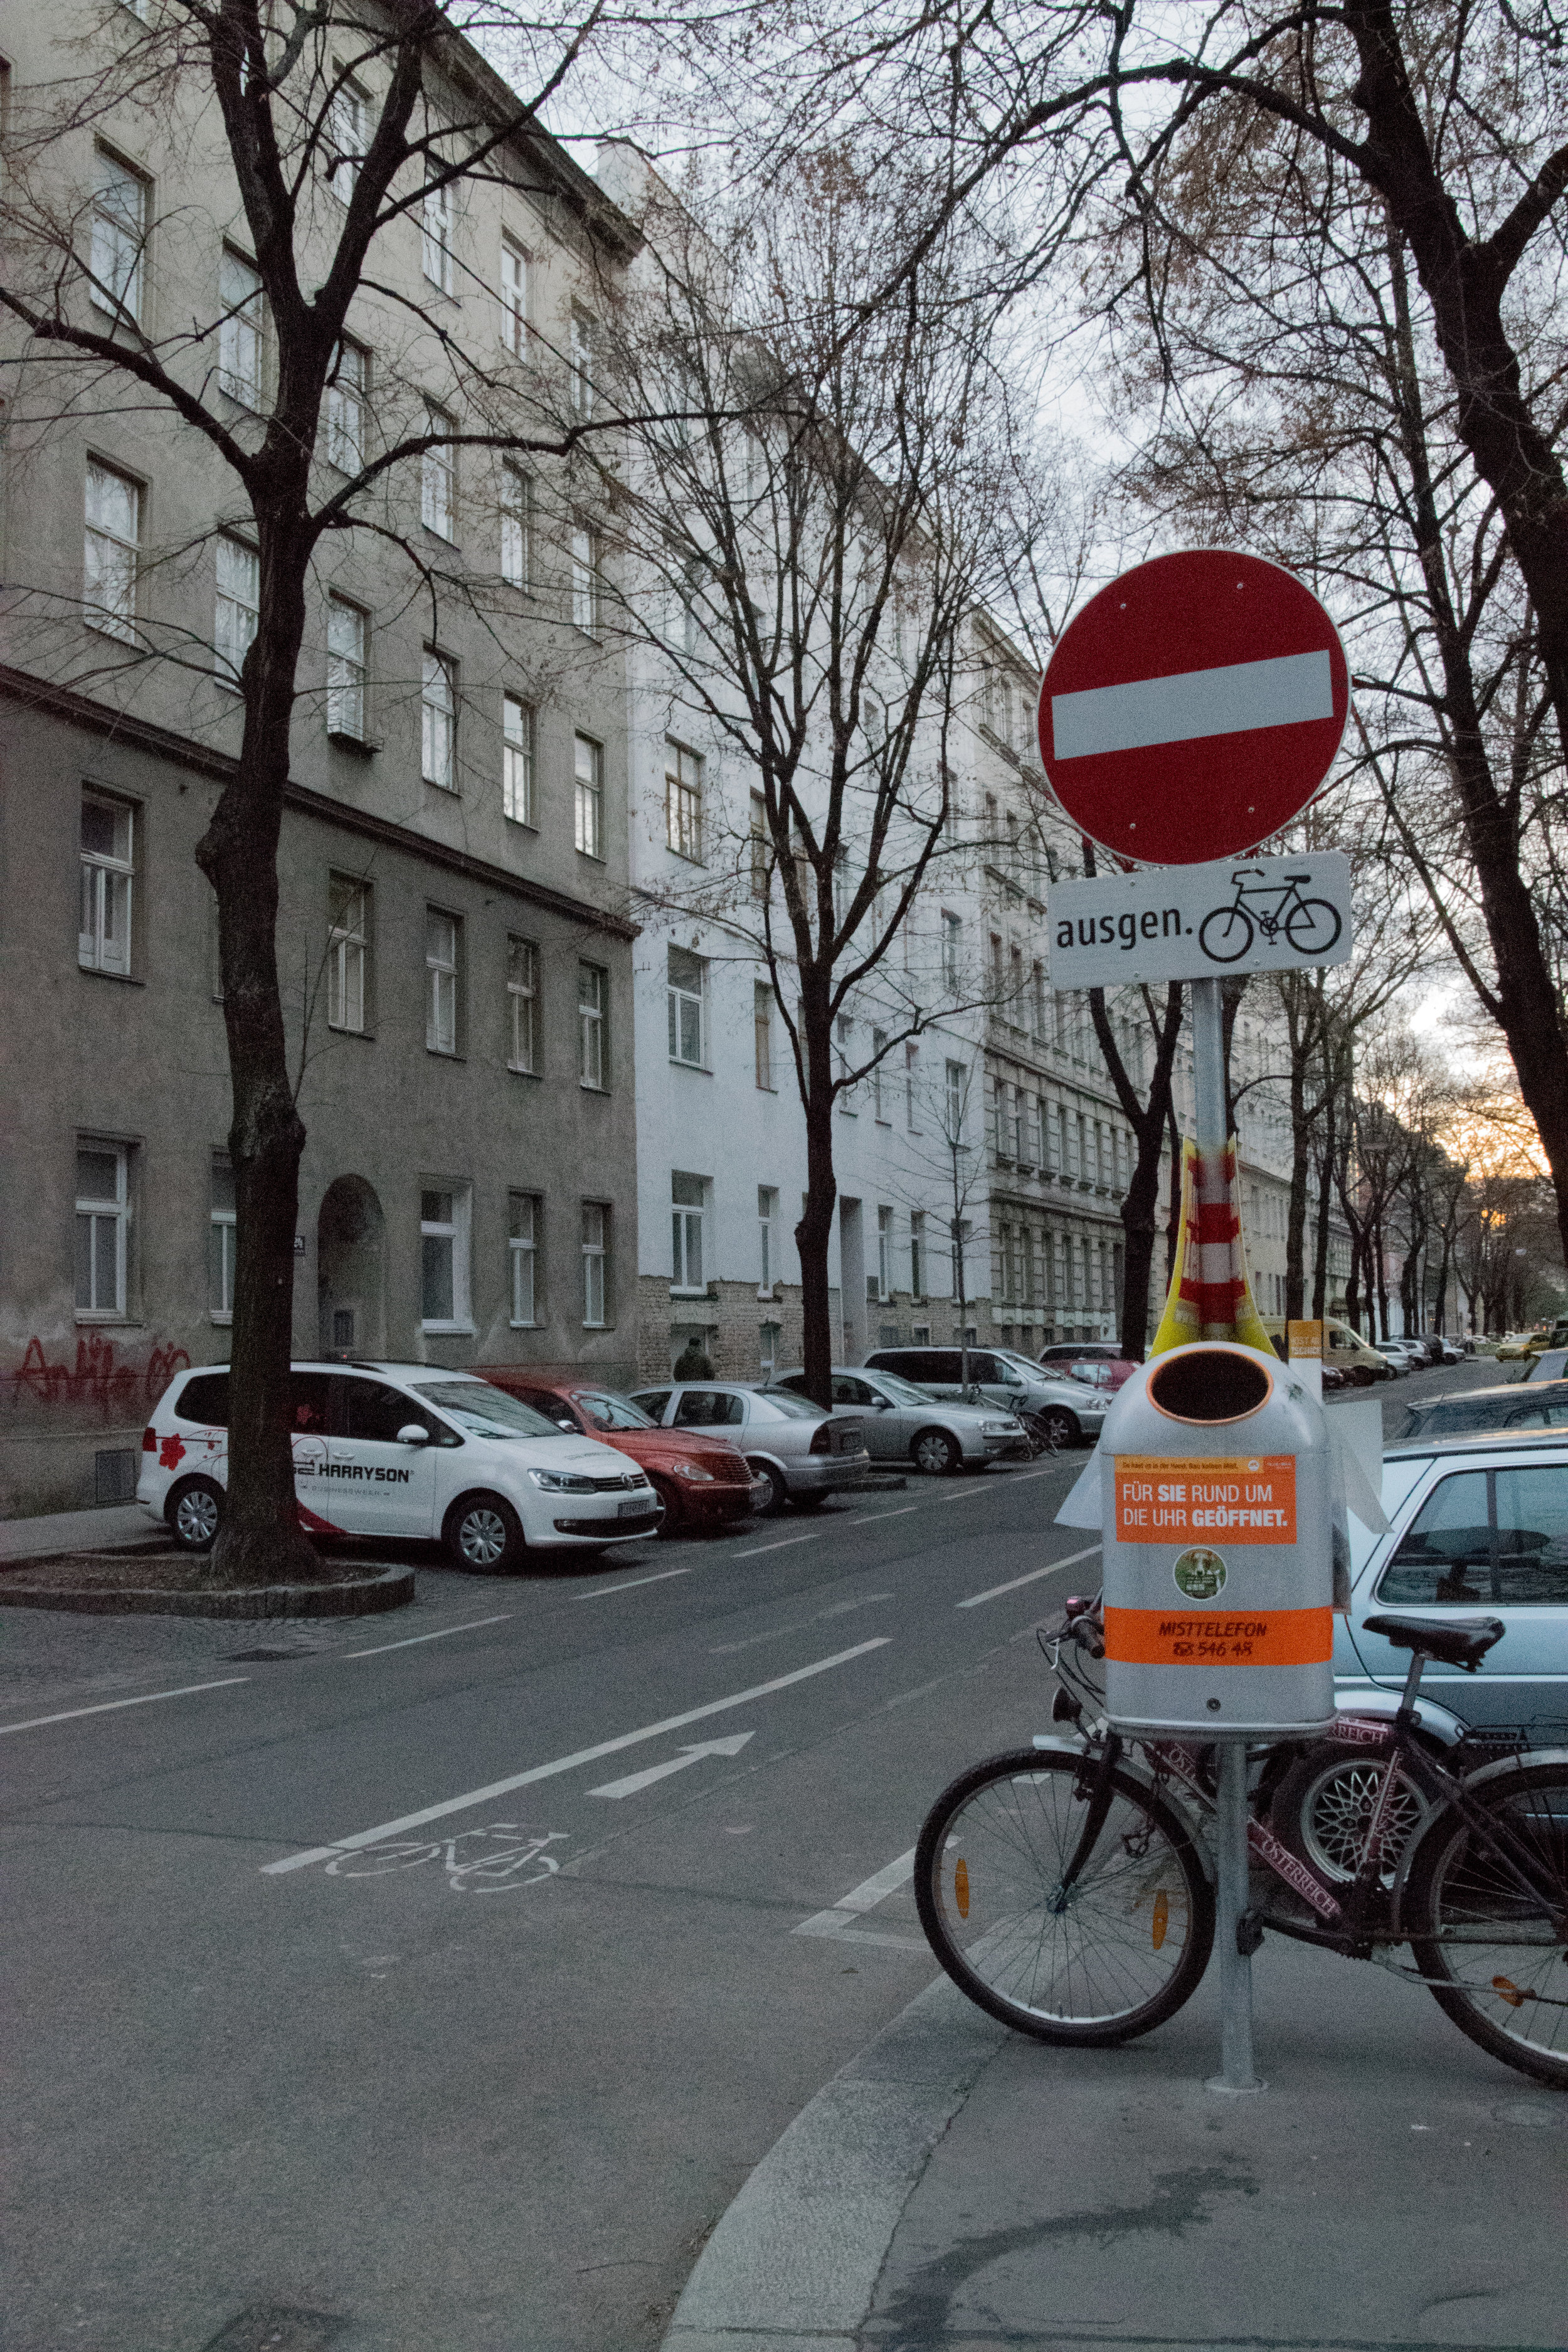 bikes can ride against the traffic on a one-way street